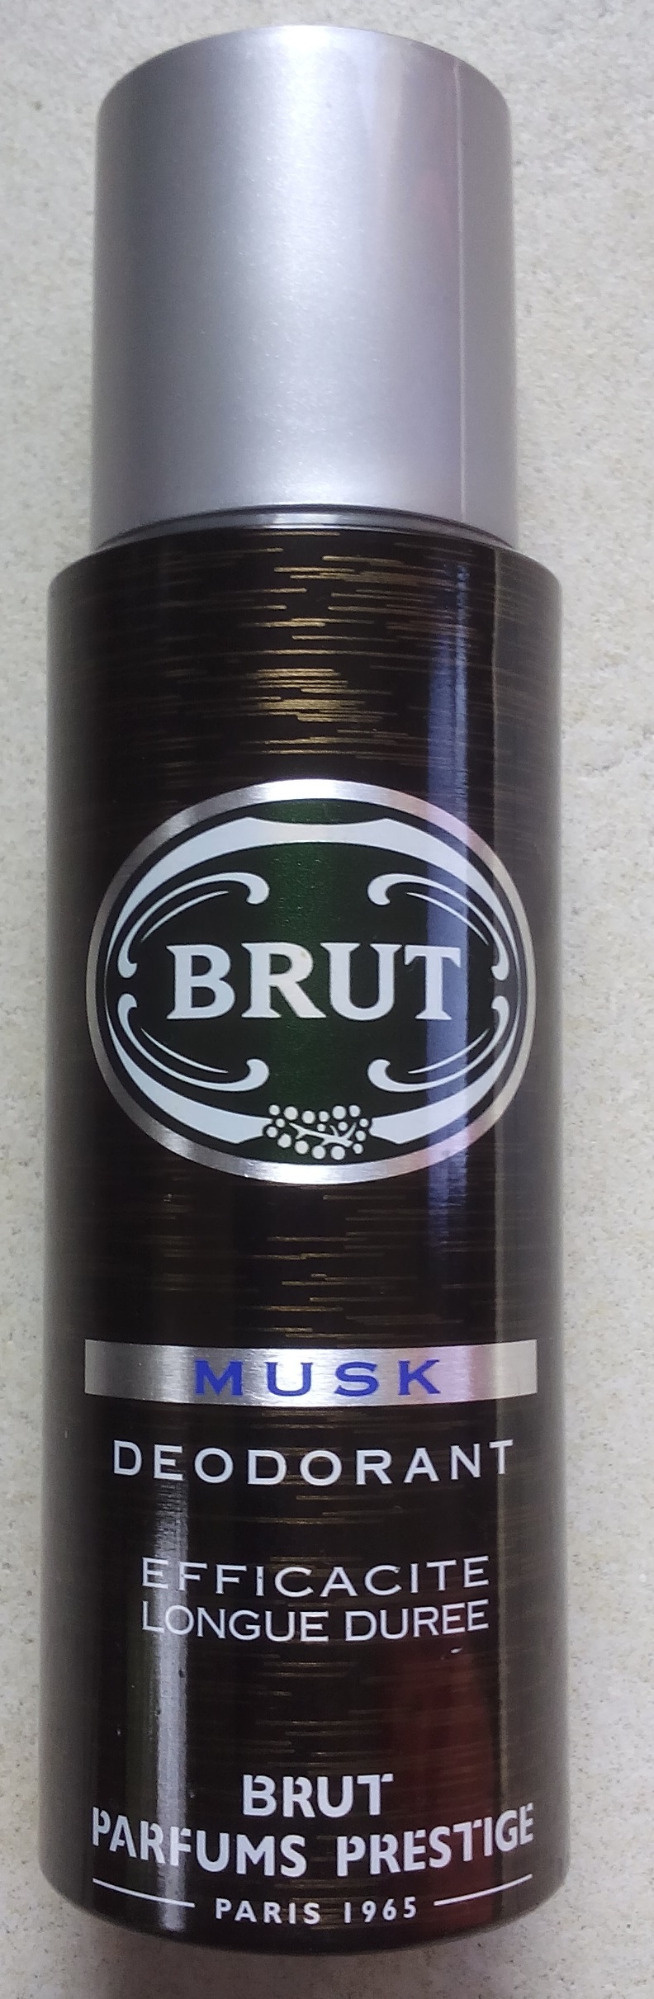 Brut Musk Déodorant - Product - fr